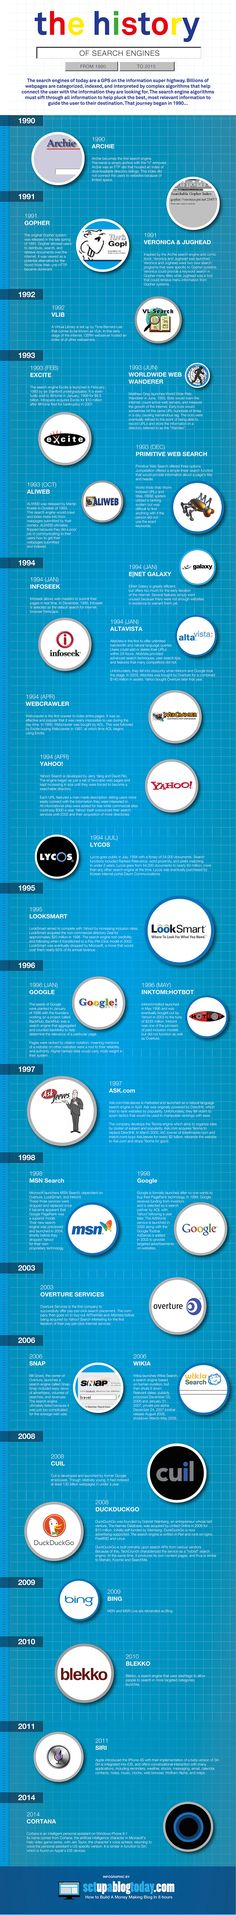 Search-Engine-History-Infographic  http://www.setupablogtoday.com/internet-search-engine-history/